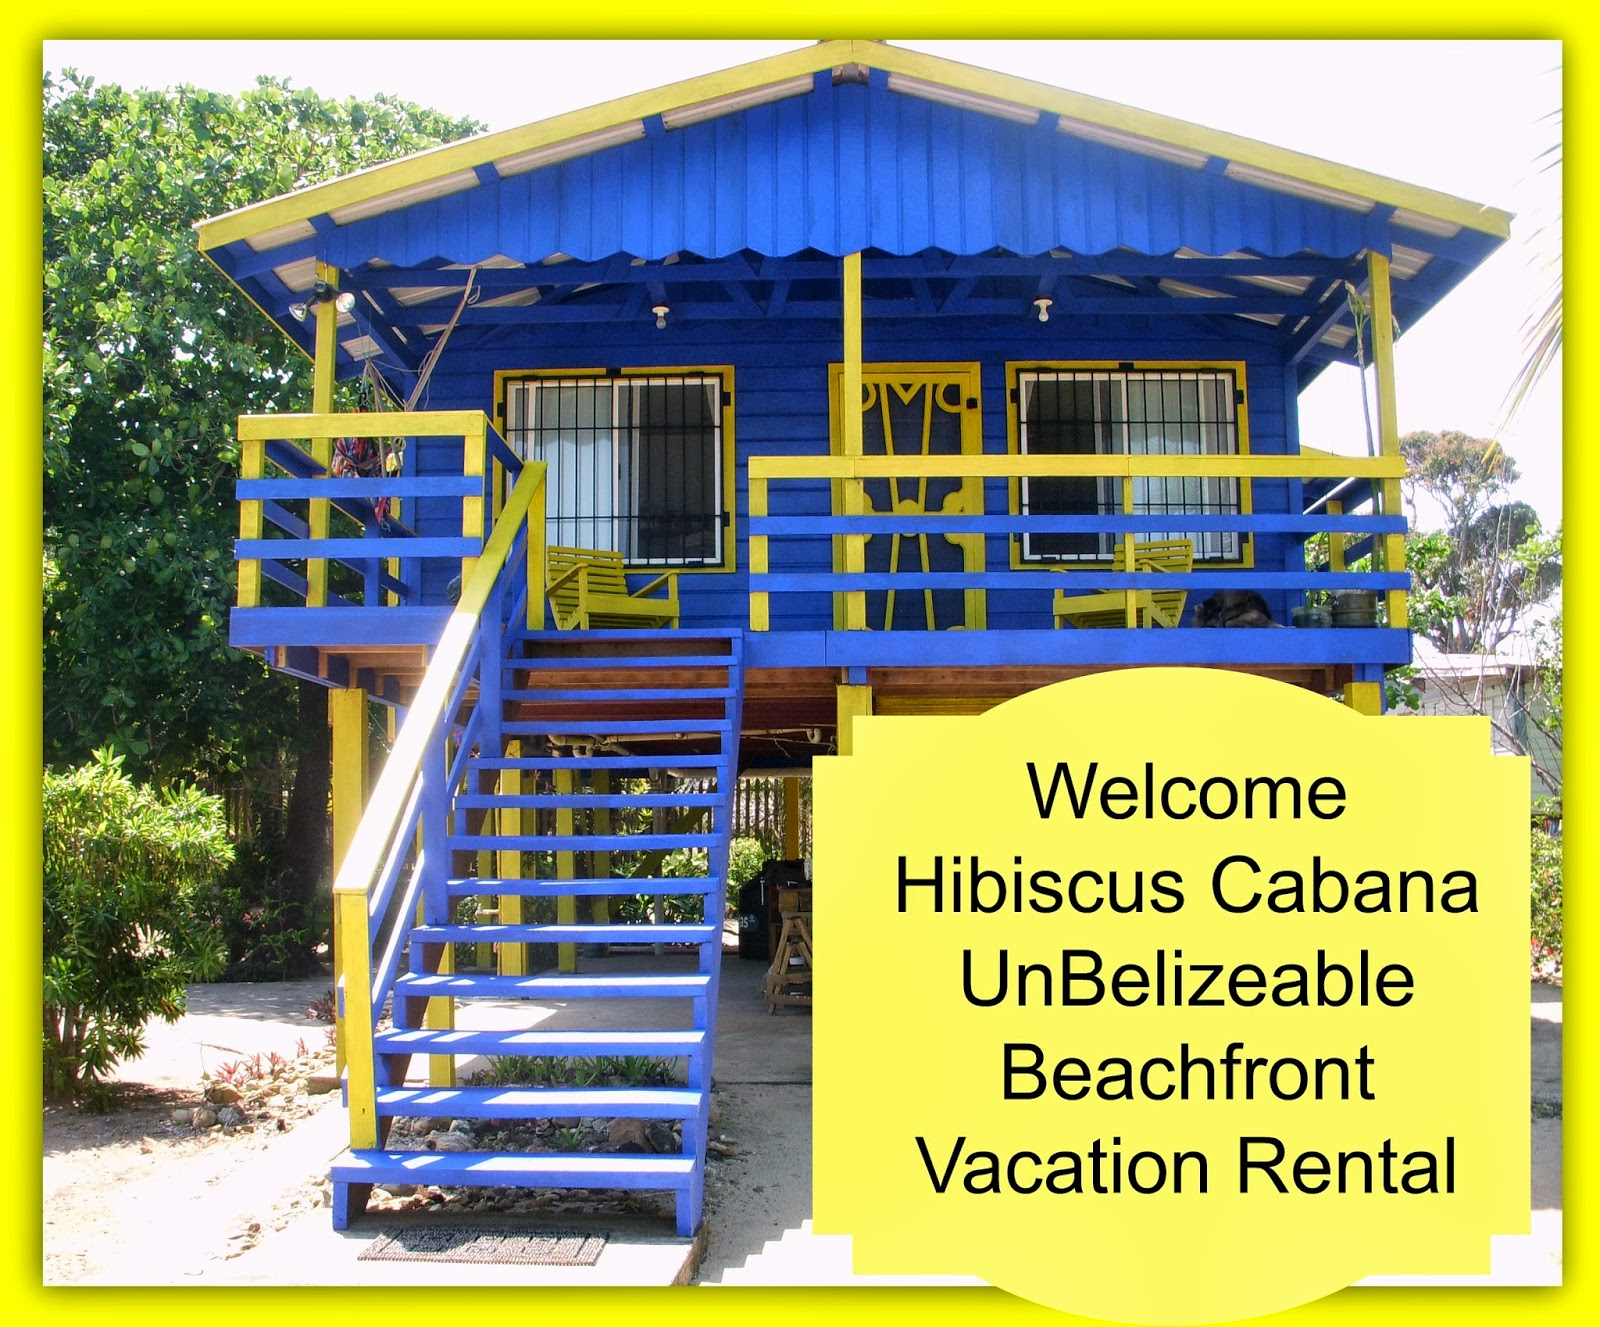 belize in the magic of the carribean hibiscus cabana vacation